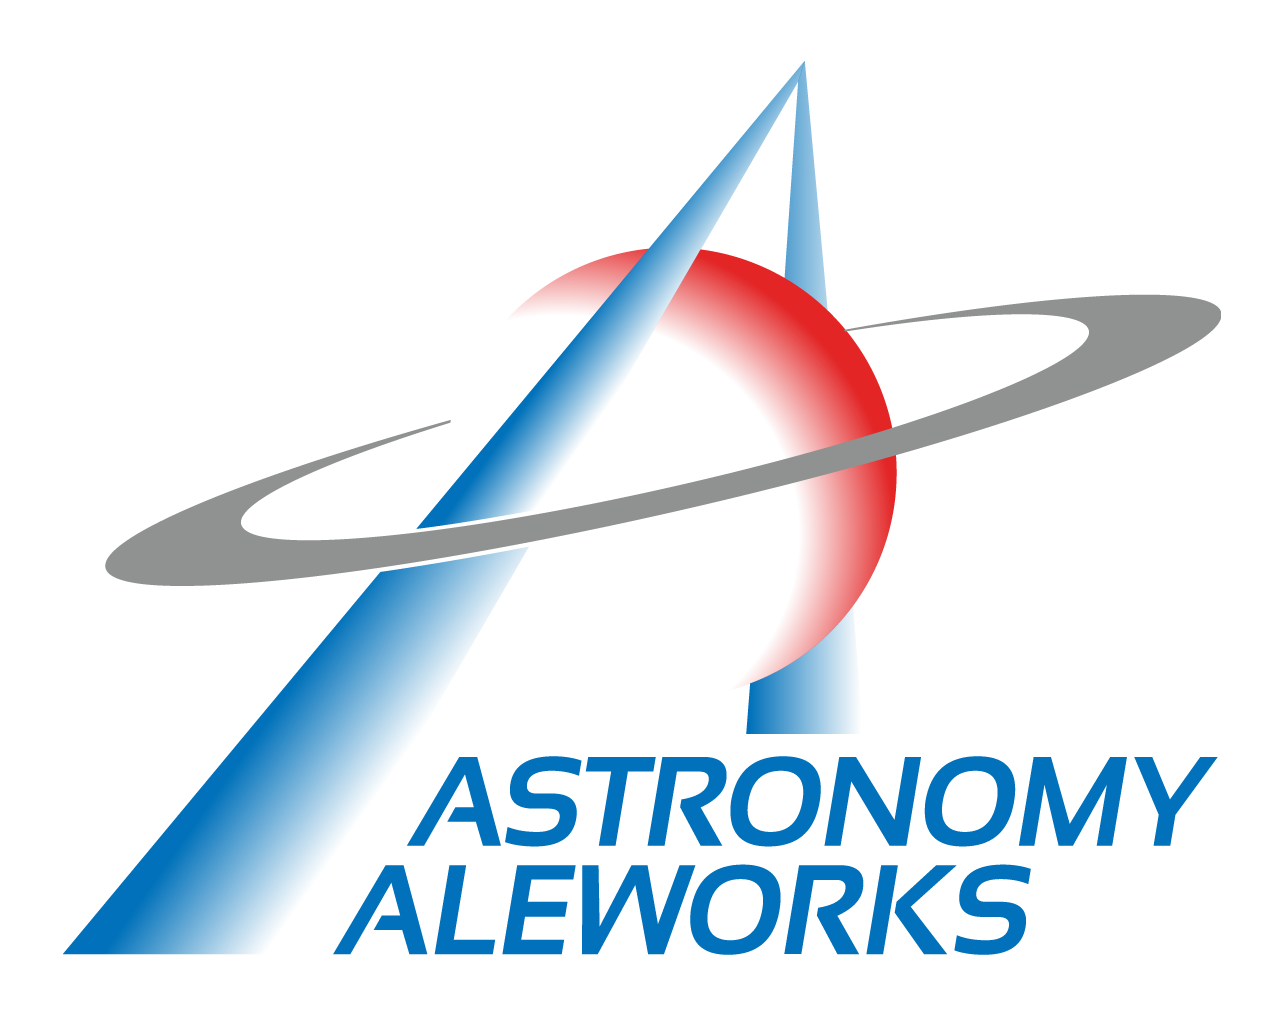 Astronomy Ale Works